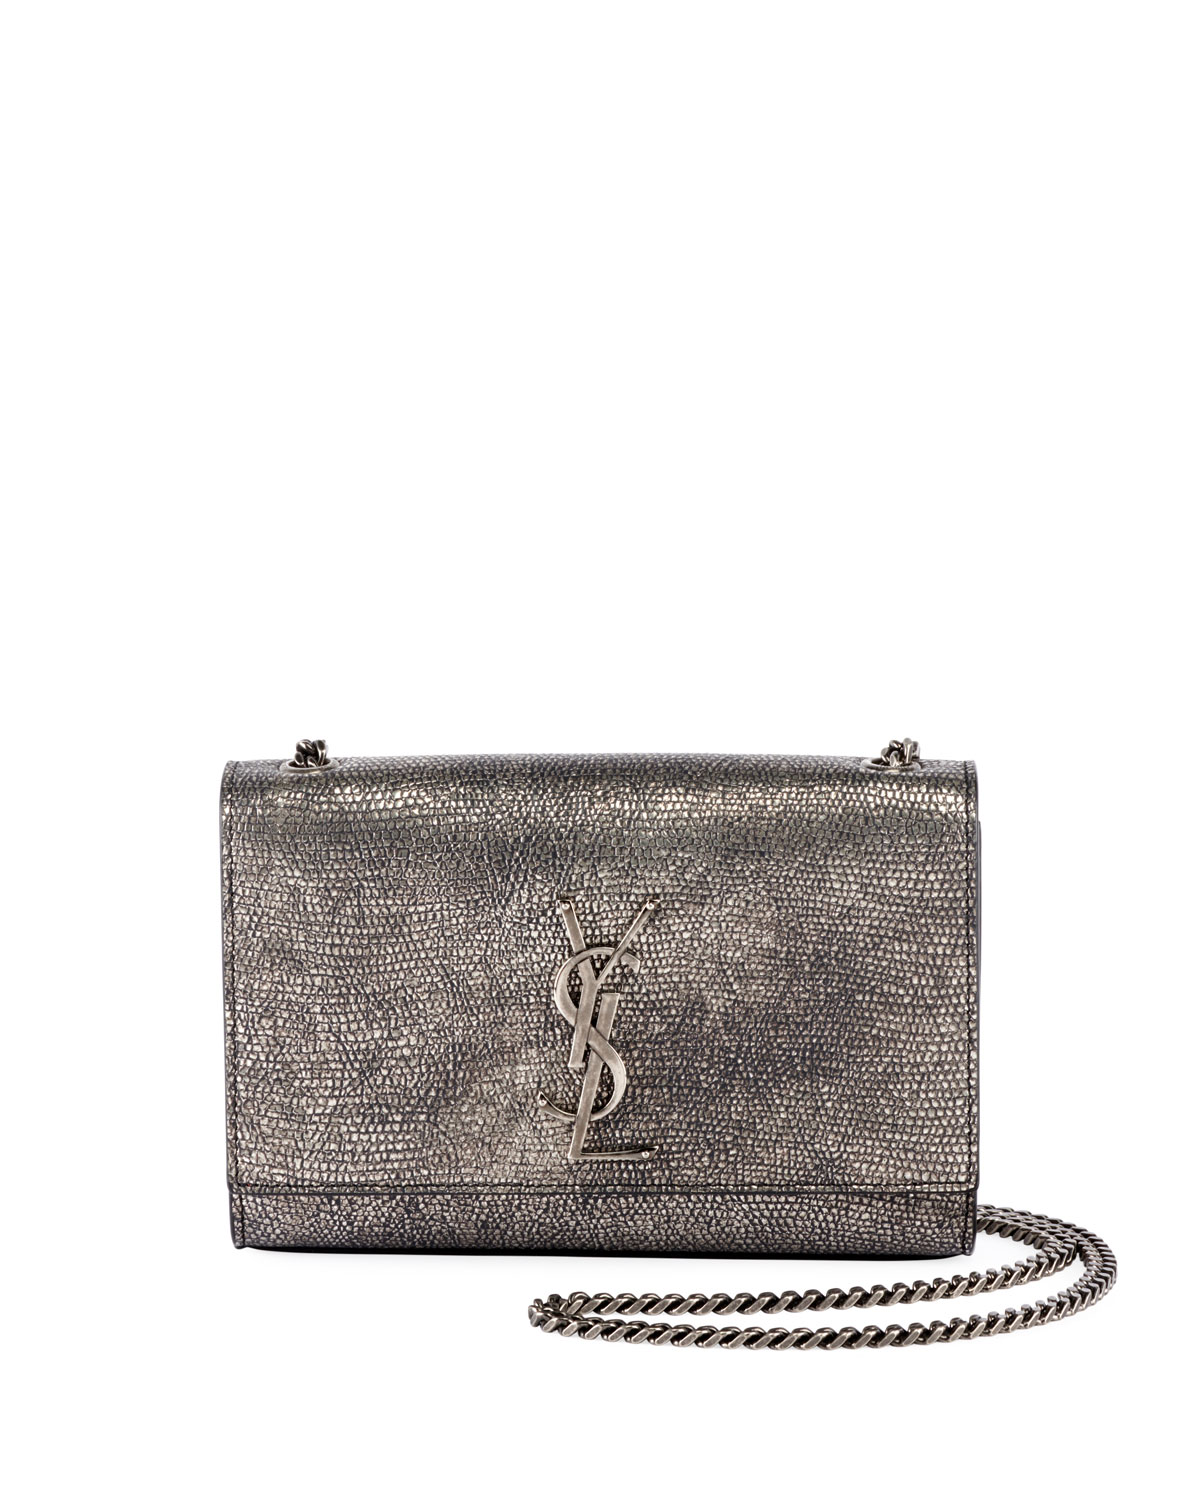 c8baffa64eca Saint Laurent Kate Monogram YSL Small Metallic Lizard-Print Crossbody Bag